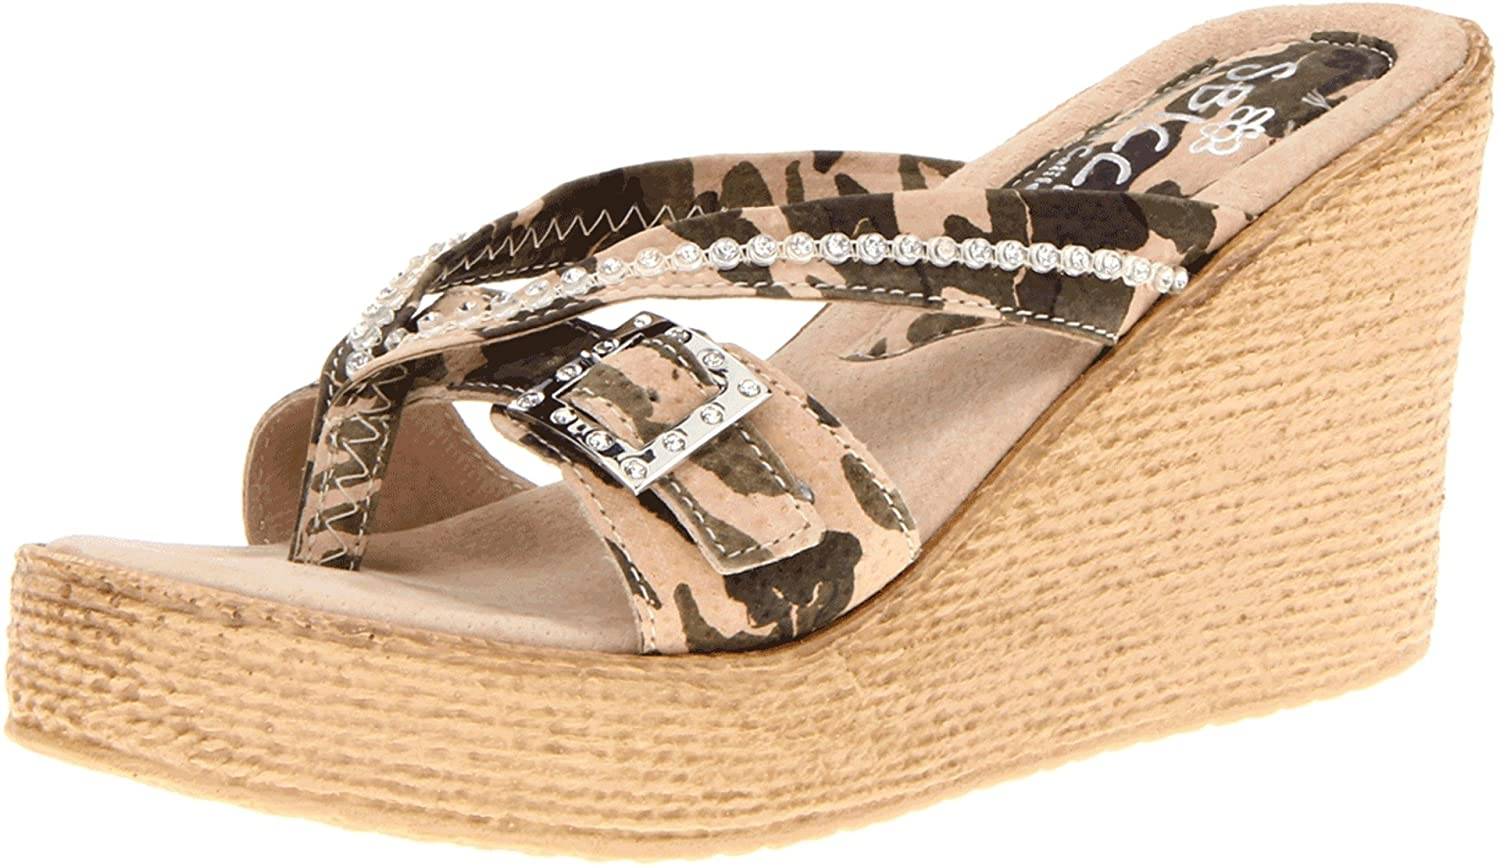 Sbicca Women's Major Wedge Sandal B00BM8MX1S 9 B(M) US|Camouflage